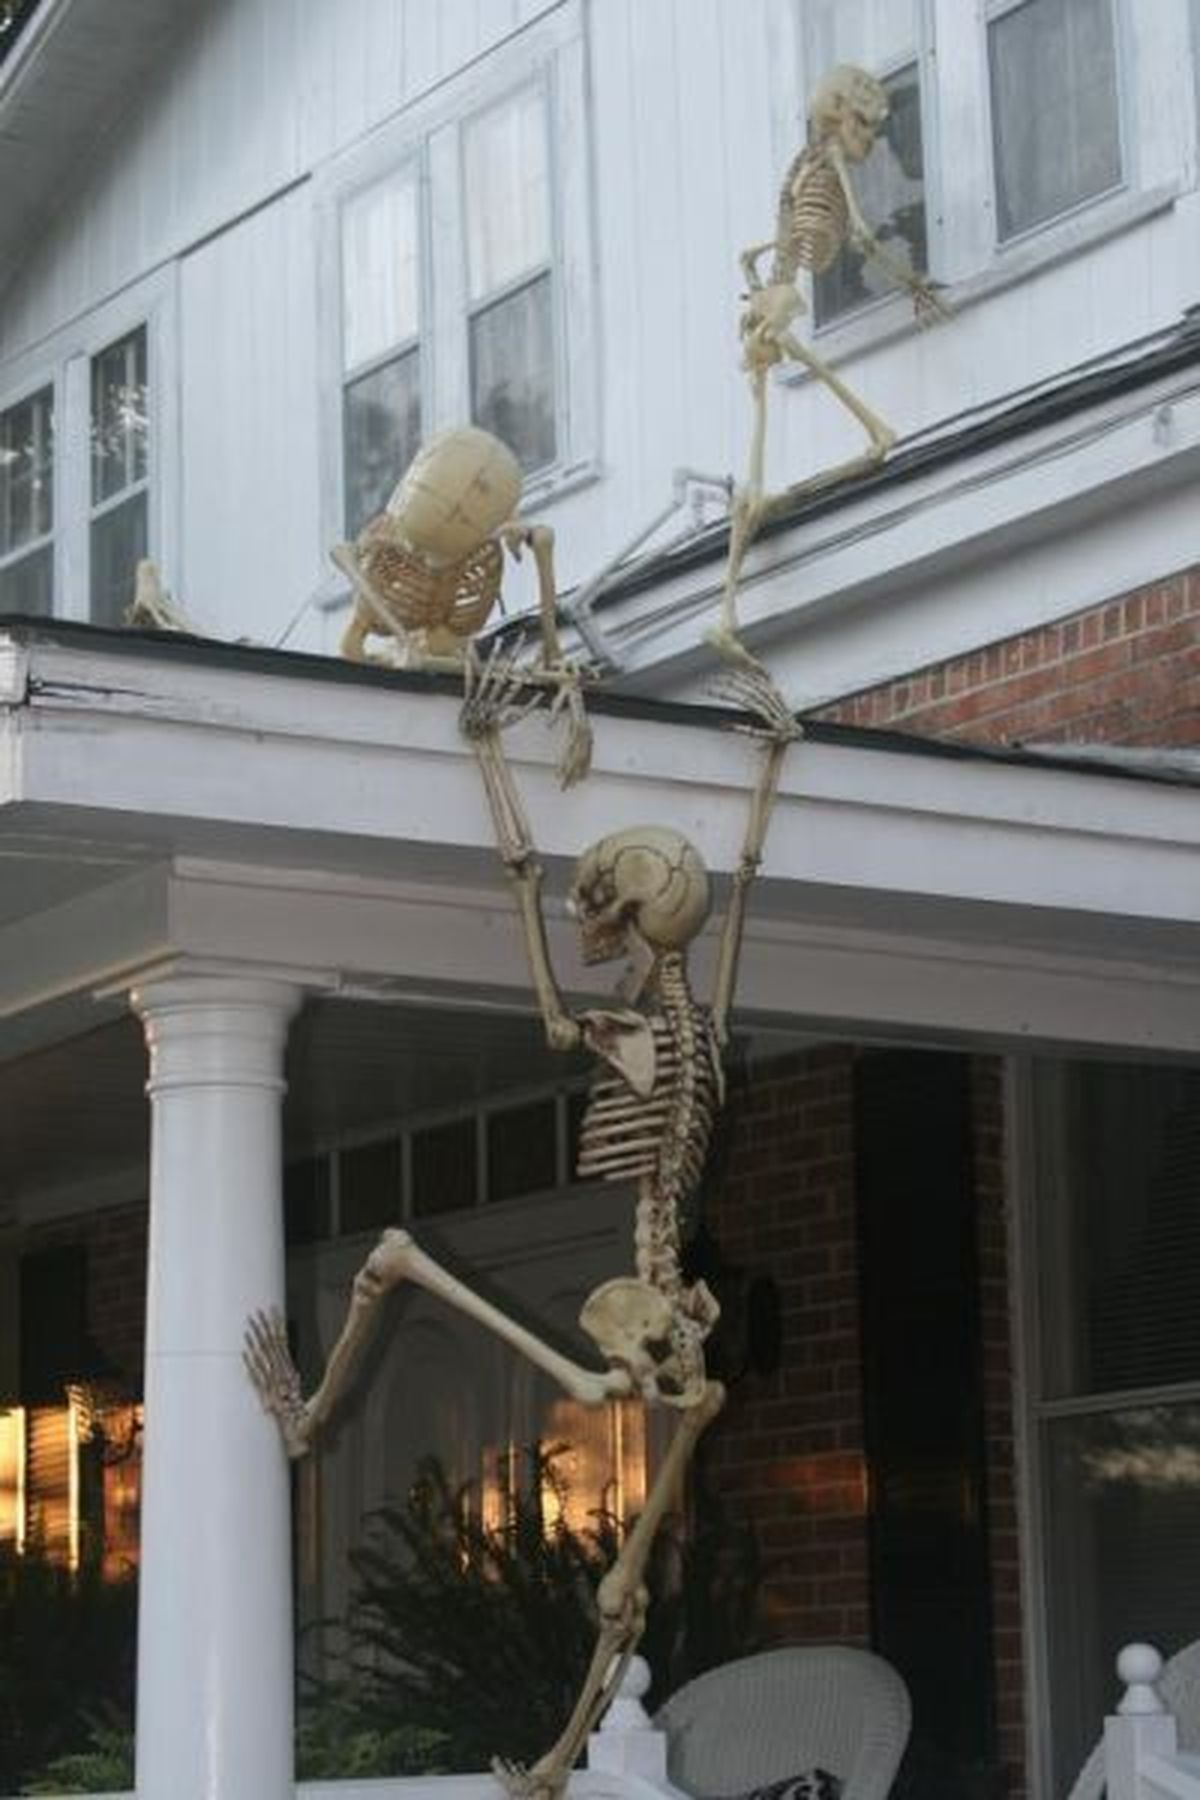 clever complete list of halloween decorations ideas in your home